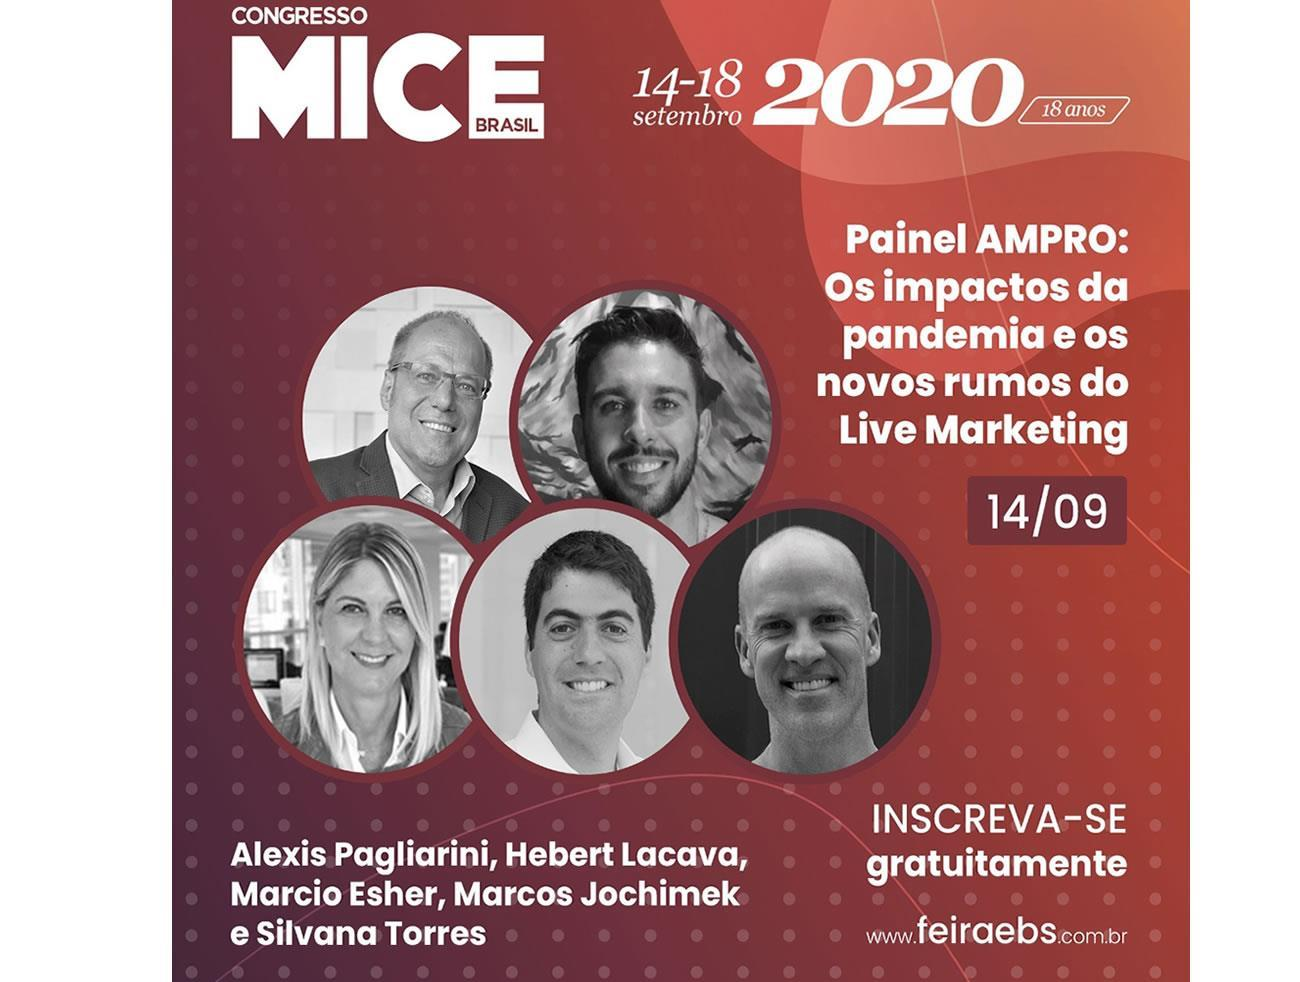 AMPRO trata sobre impactos e novos rumos do Live Marketing durante o Congresso MICE Brasil